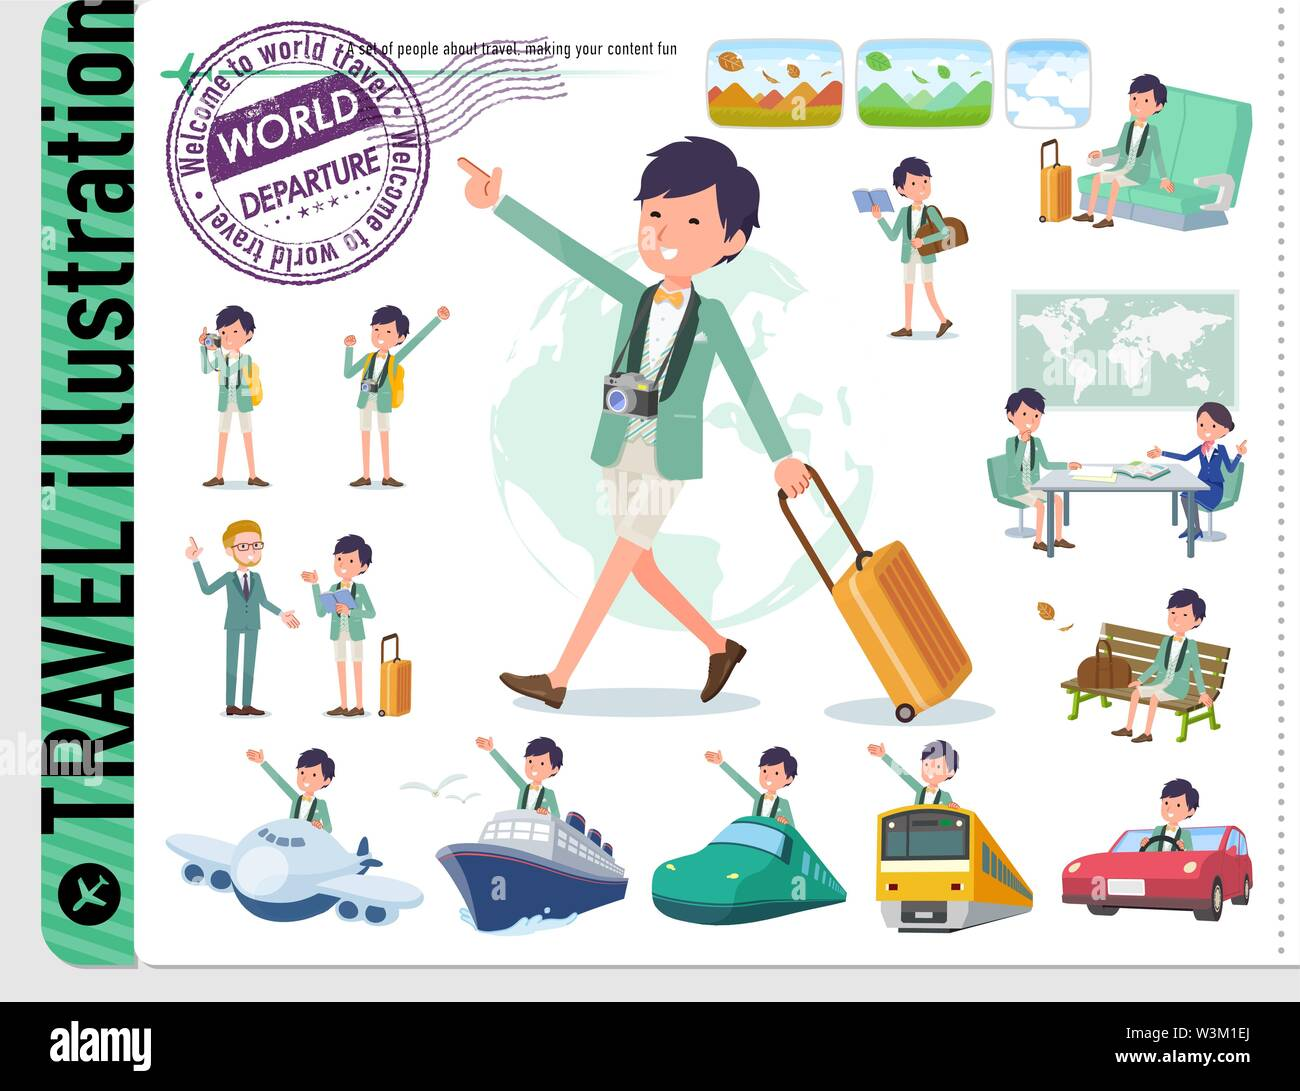 A set of tuxedo man on travel.There are also vehicles such as boats and airplanes.It's vector art so it's easy to edit. - Stock Image